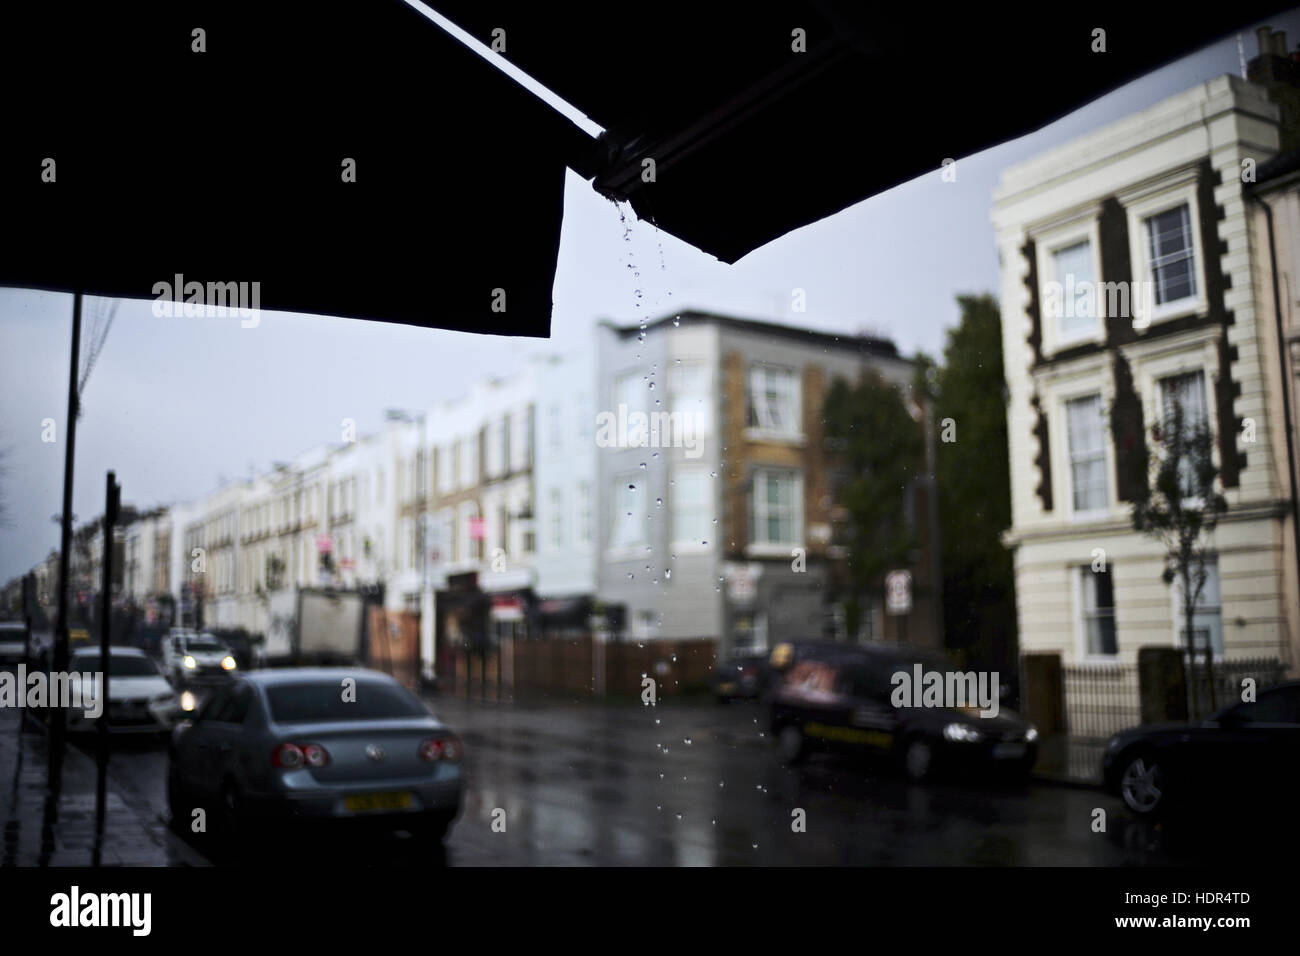 Drops of water falling from shop awning on a gloomy urban daylight rain storm - Stock Image